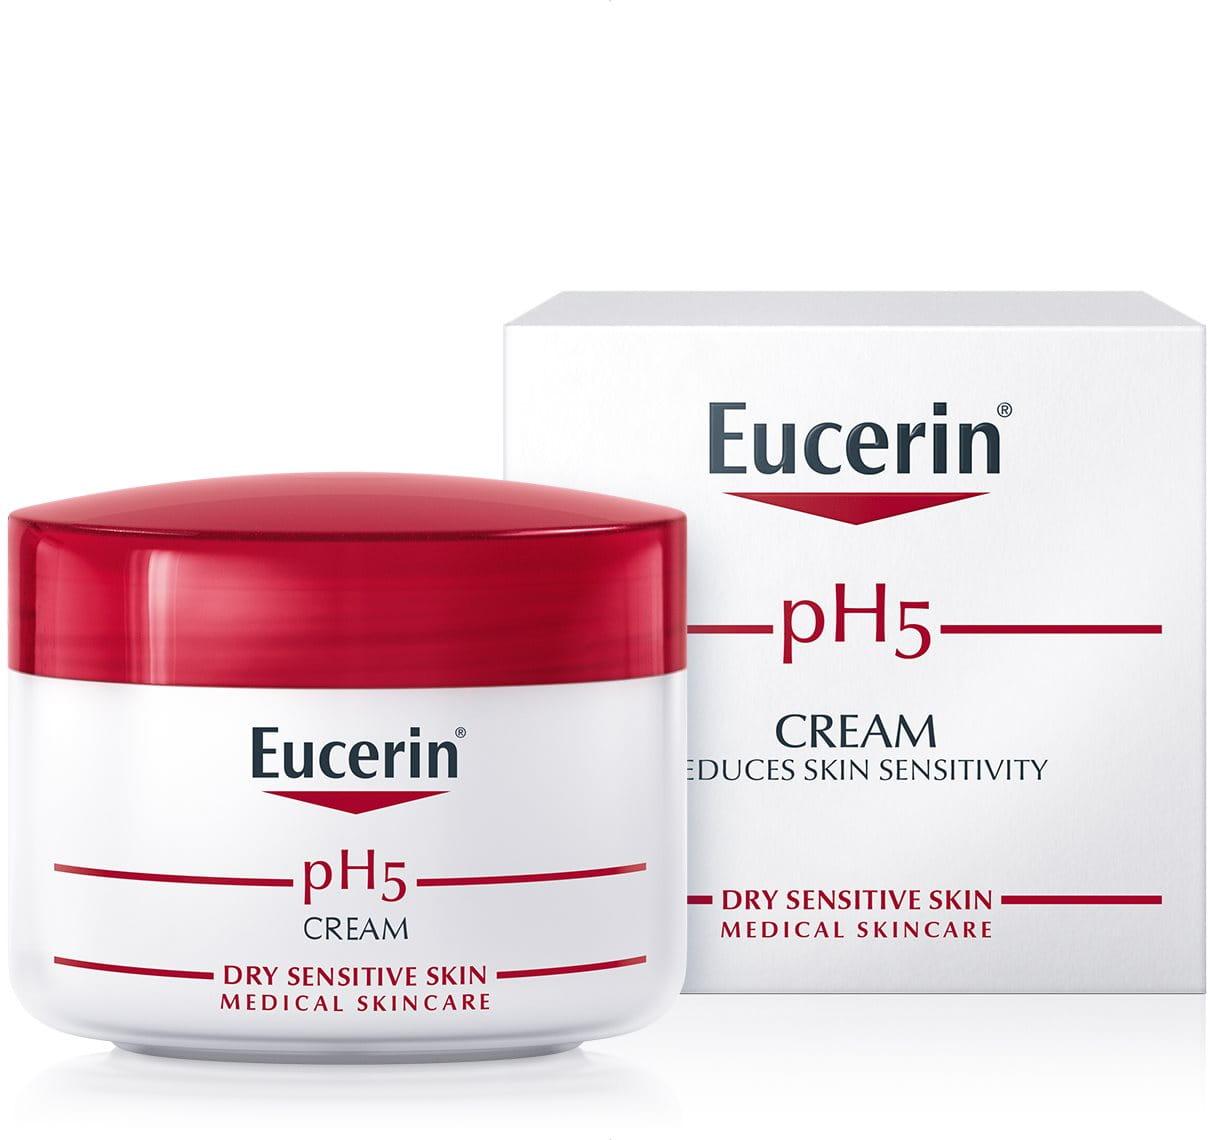 eucerin sensitive skin ph5 cream